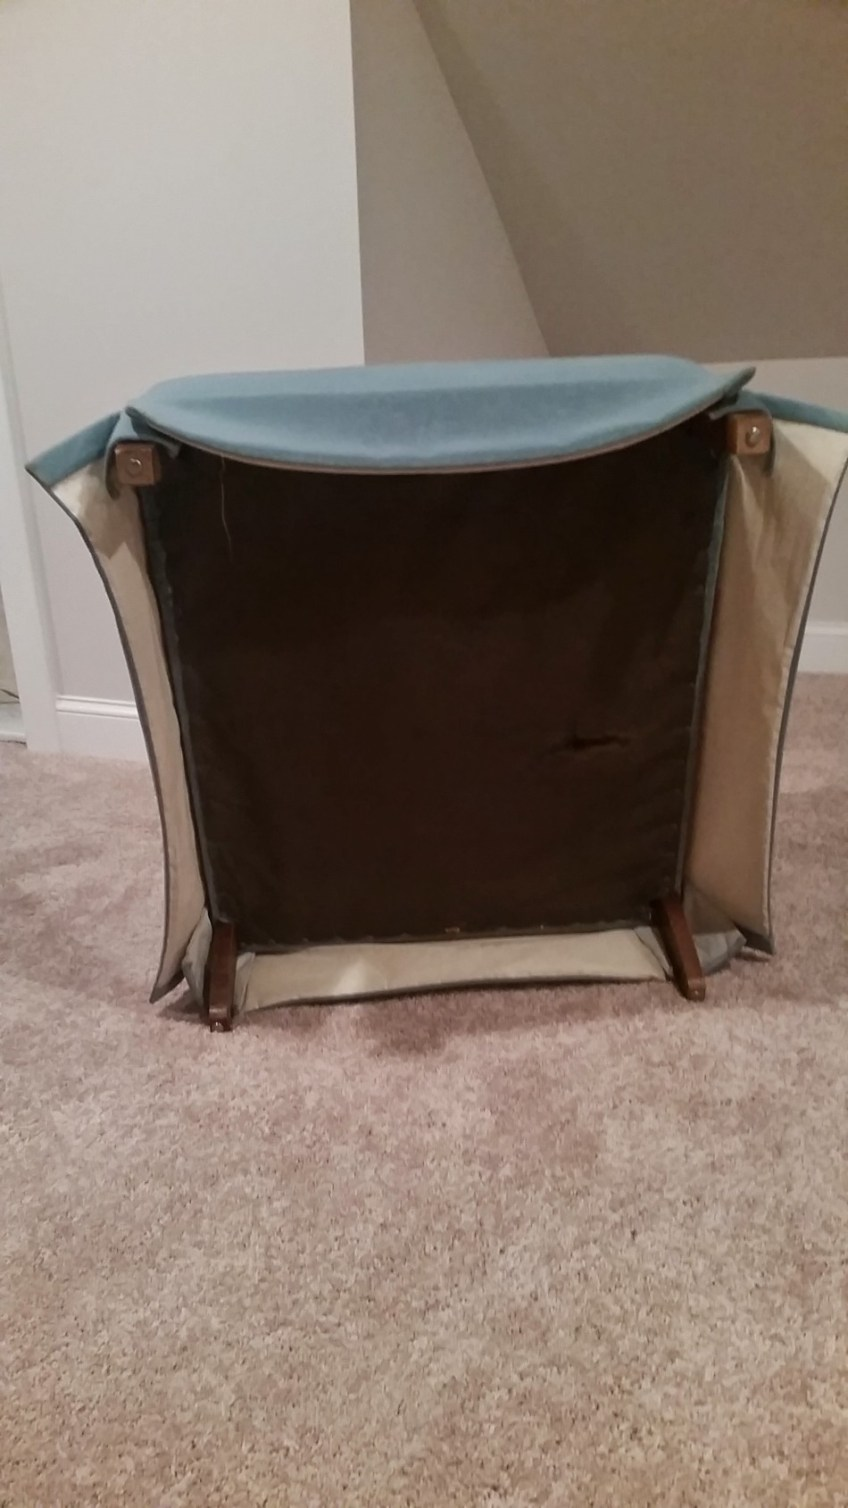 Updating Old Chair Skirts | HomeWork Design Co.